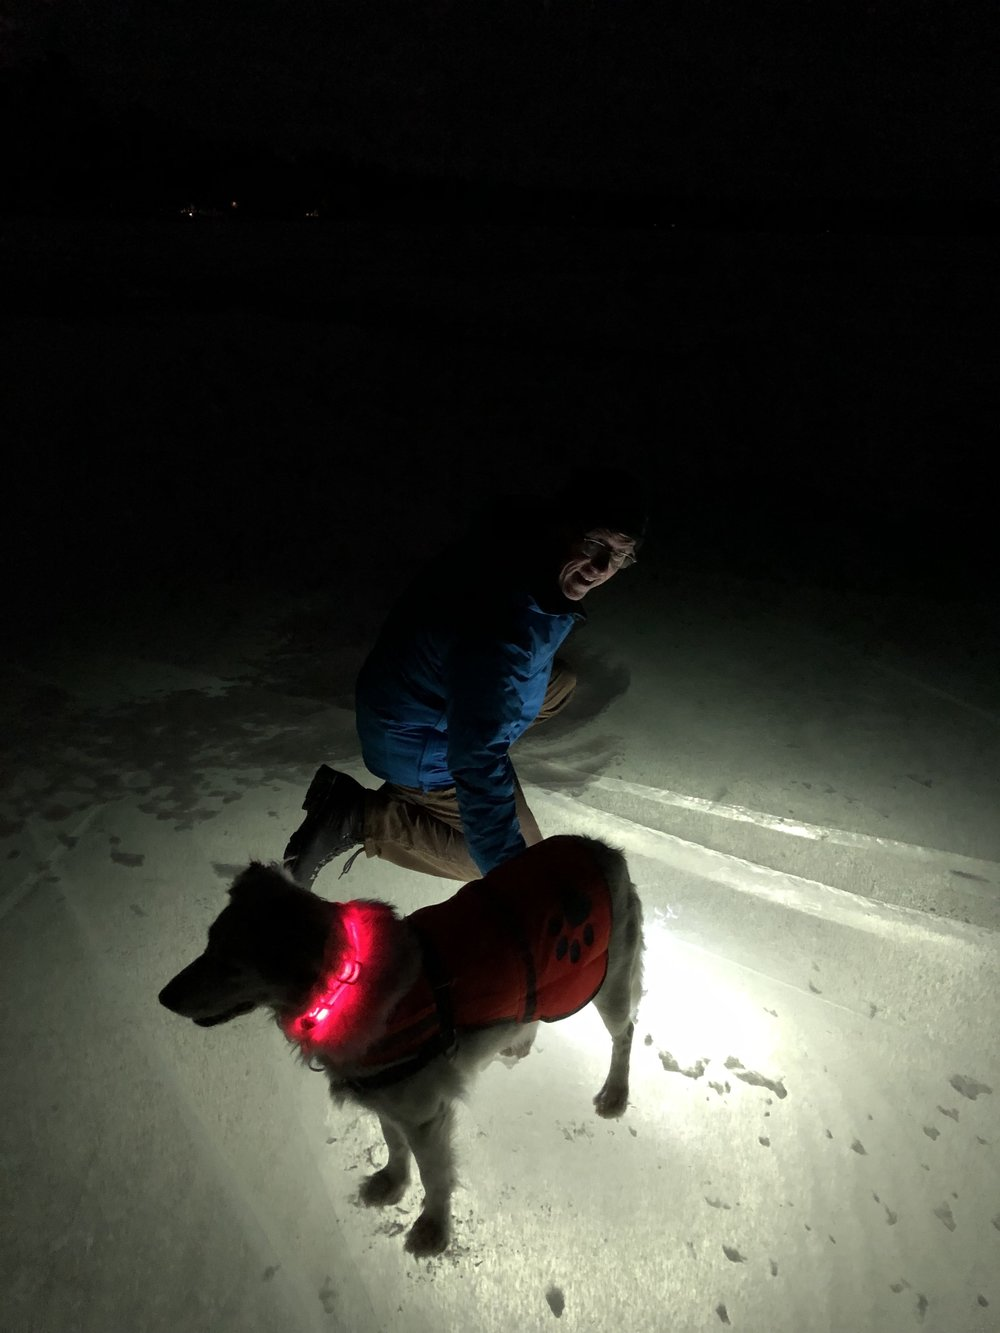 Shining an LED flashlight into the ice reveals its thickness.